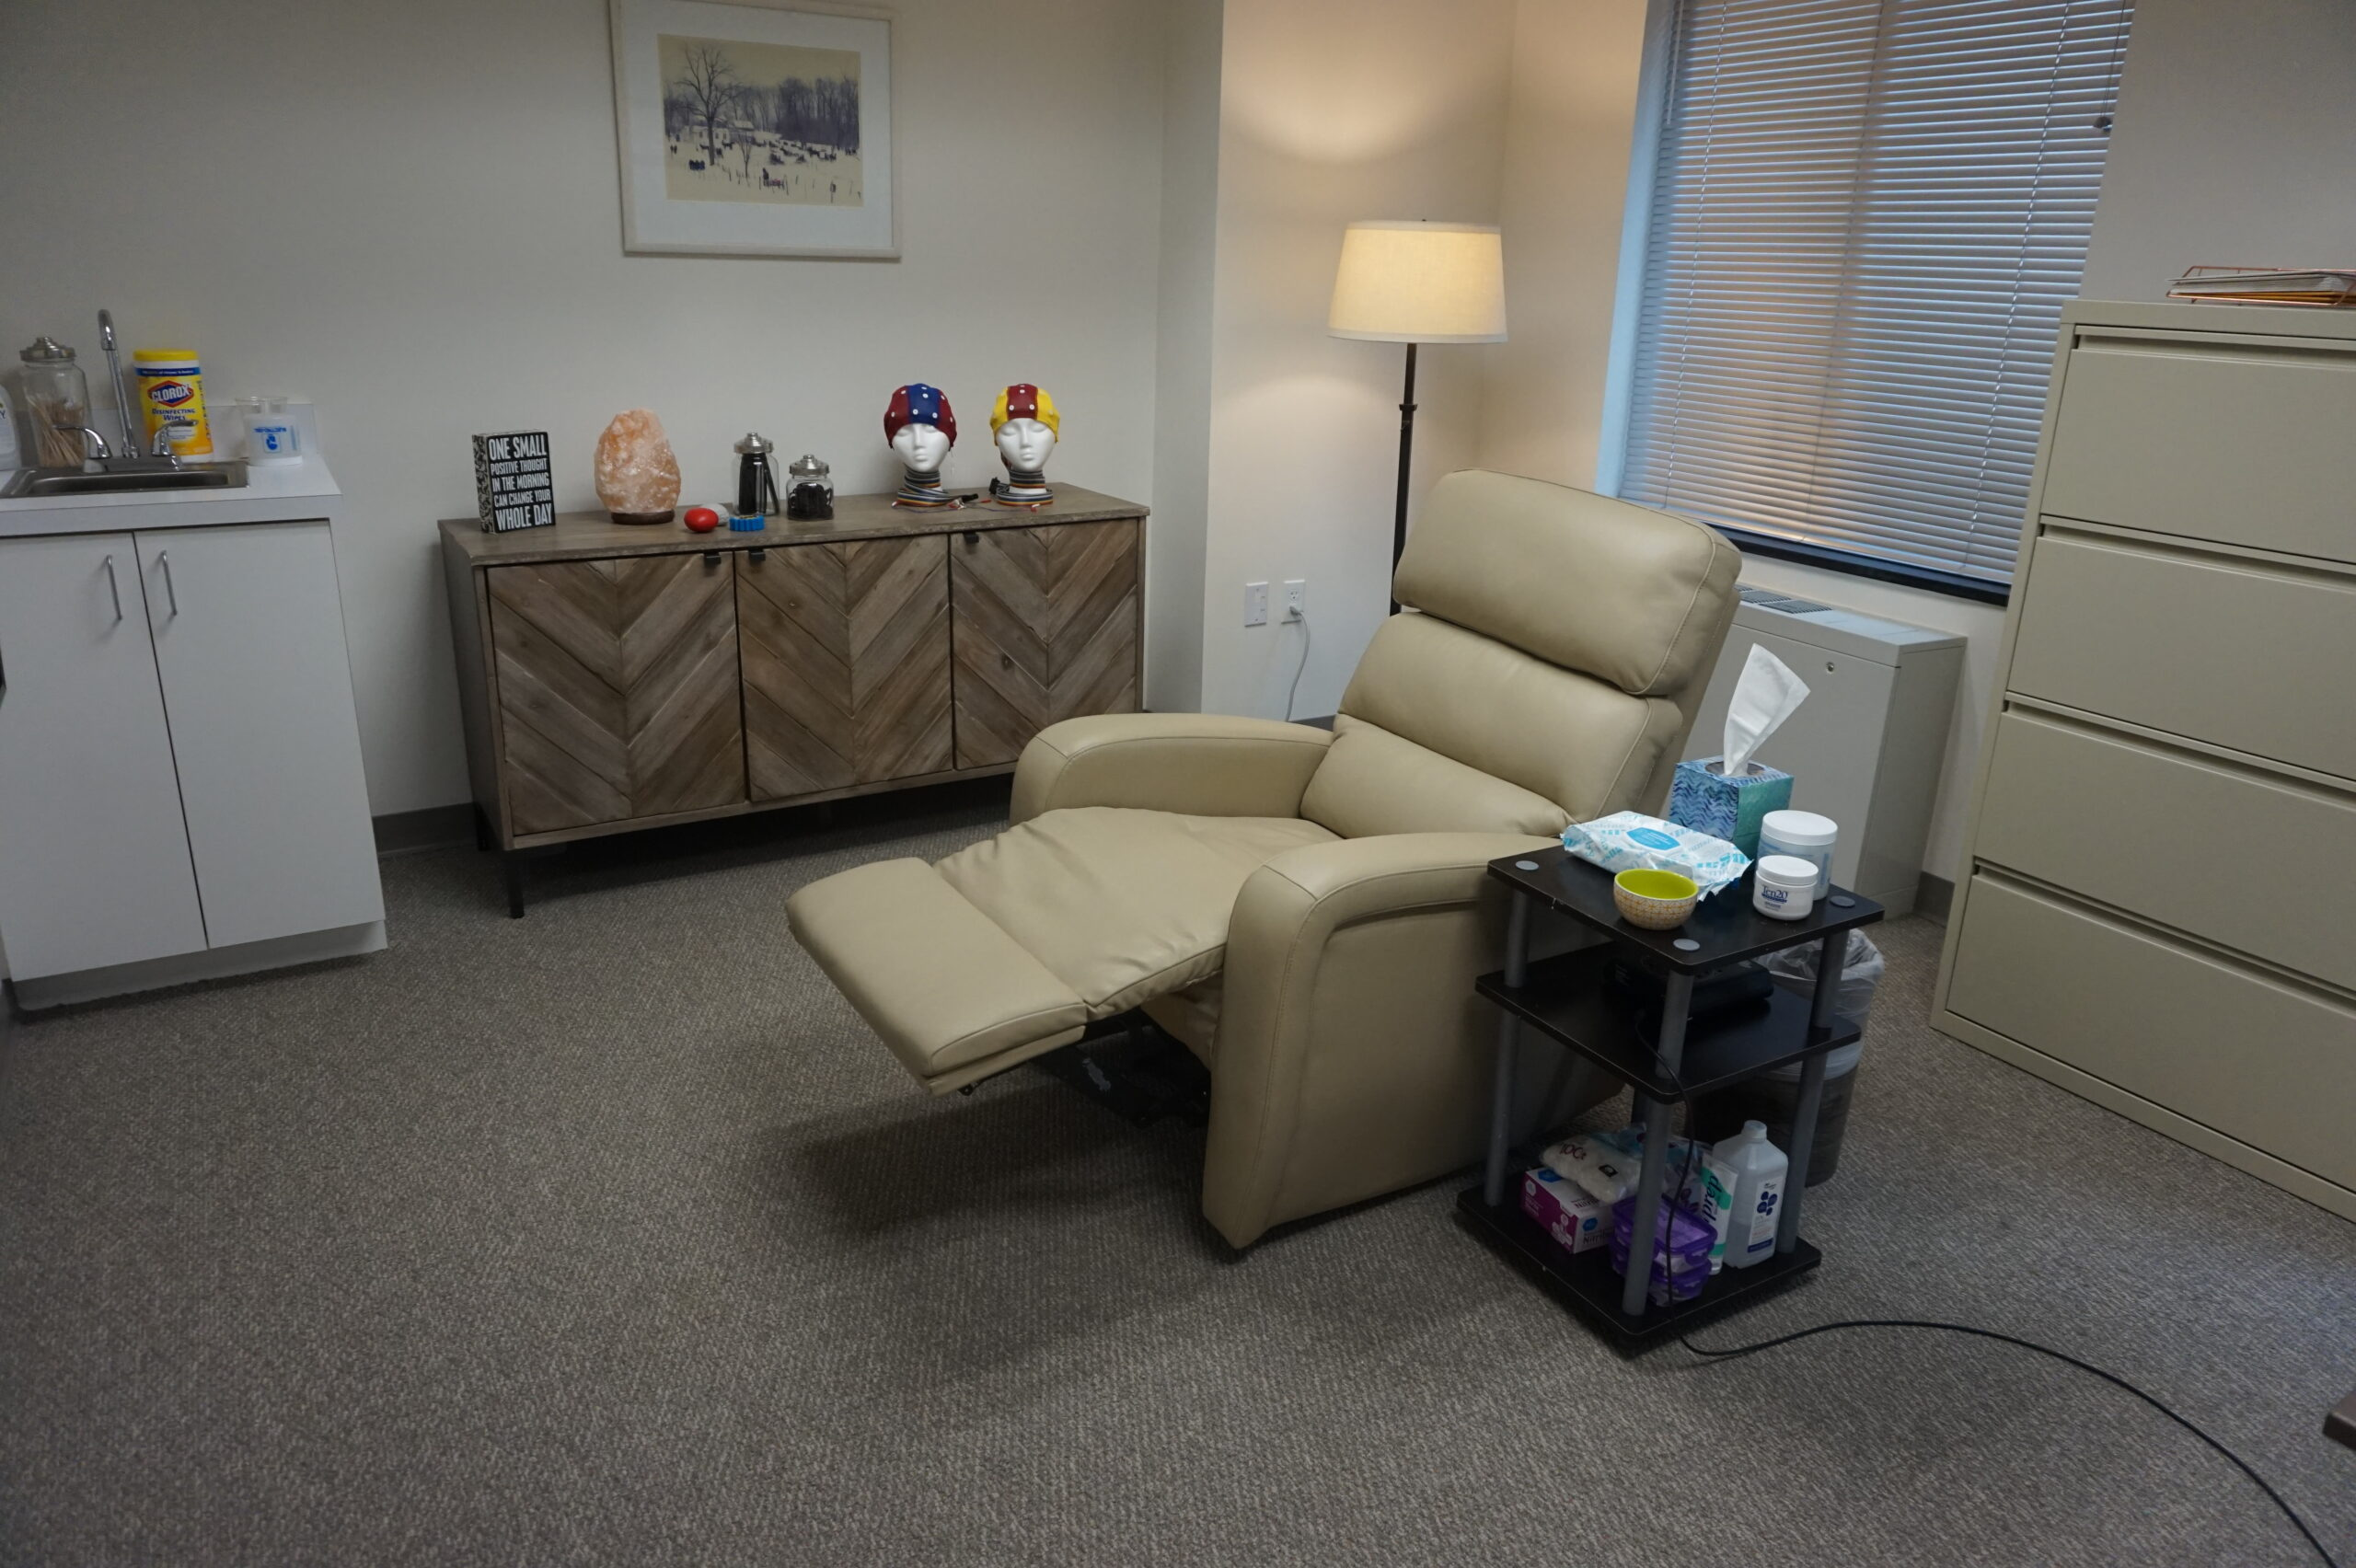 Therapy, Georgetown Psychology, Therapist, Bethesda therapy, adolescent therapy in Bethesda, Adult therapy in Bethesda, neurofeedback, neurofeedback bethesda